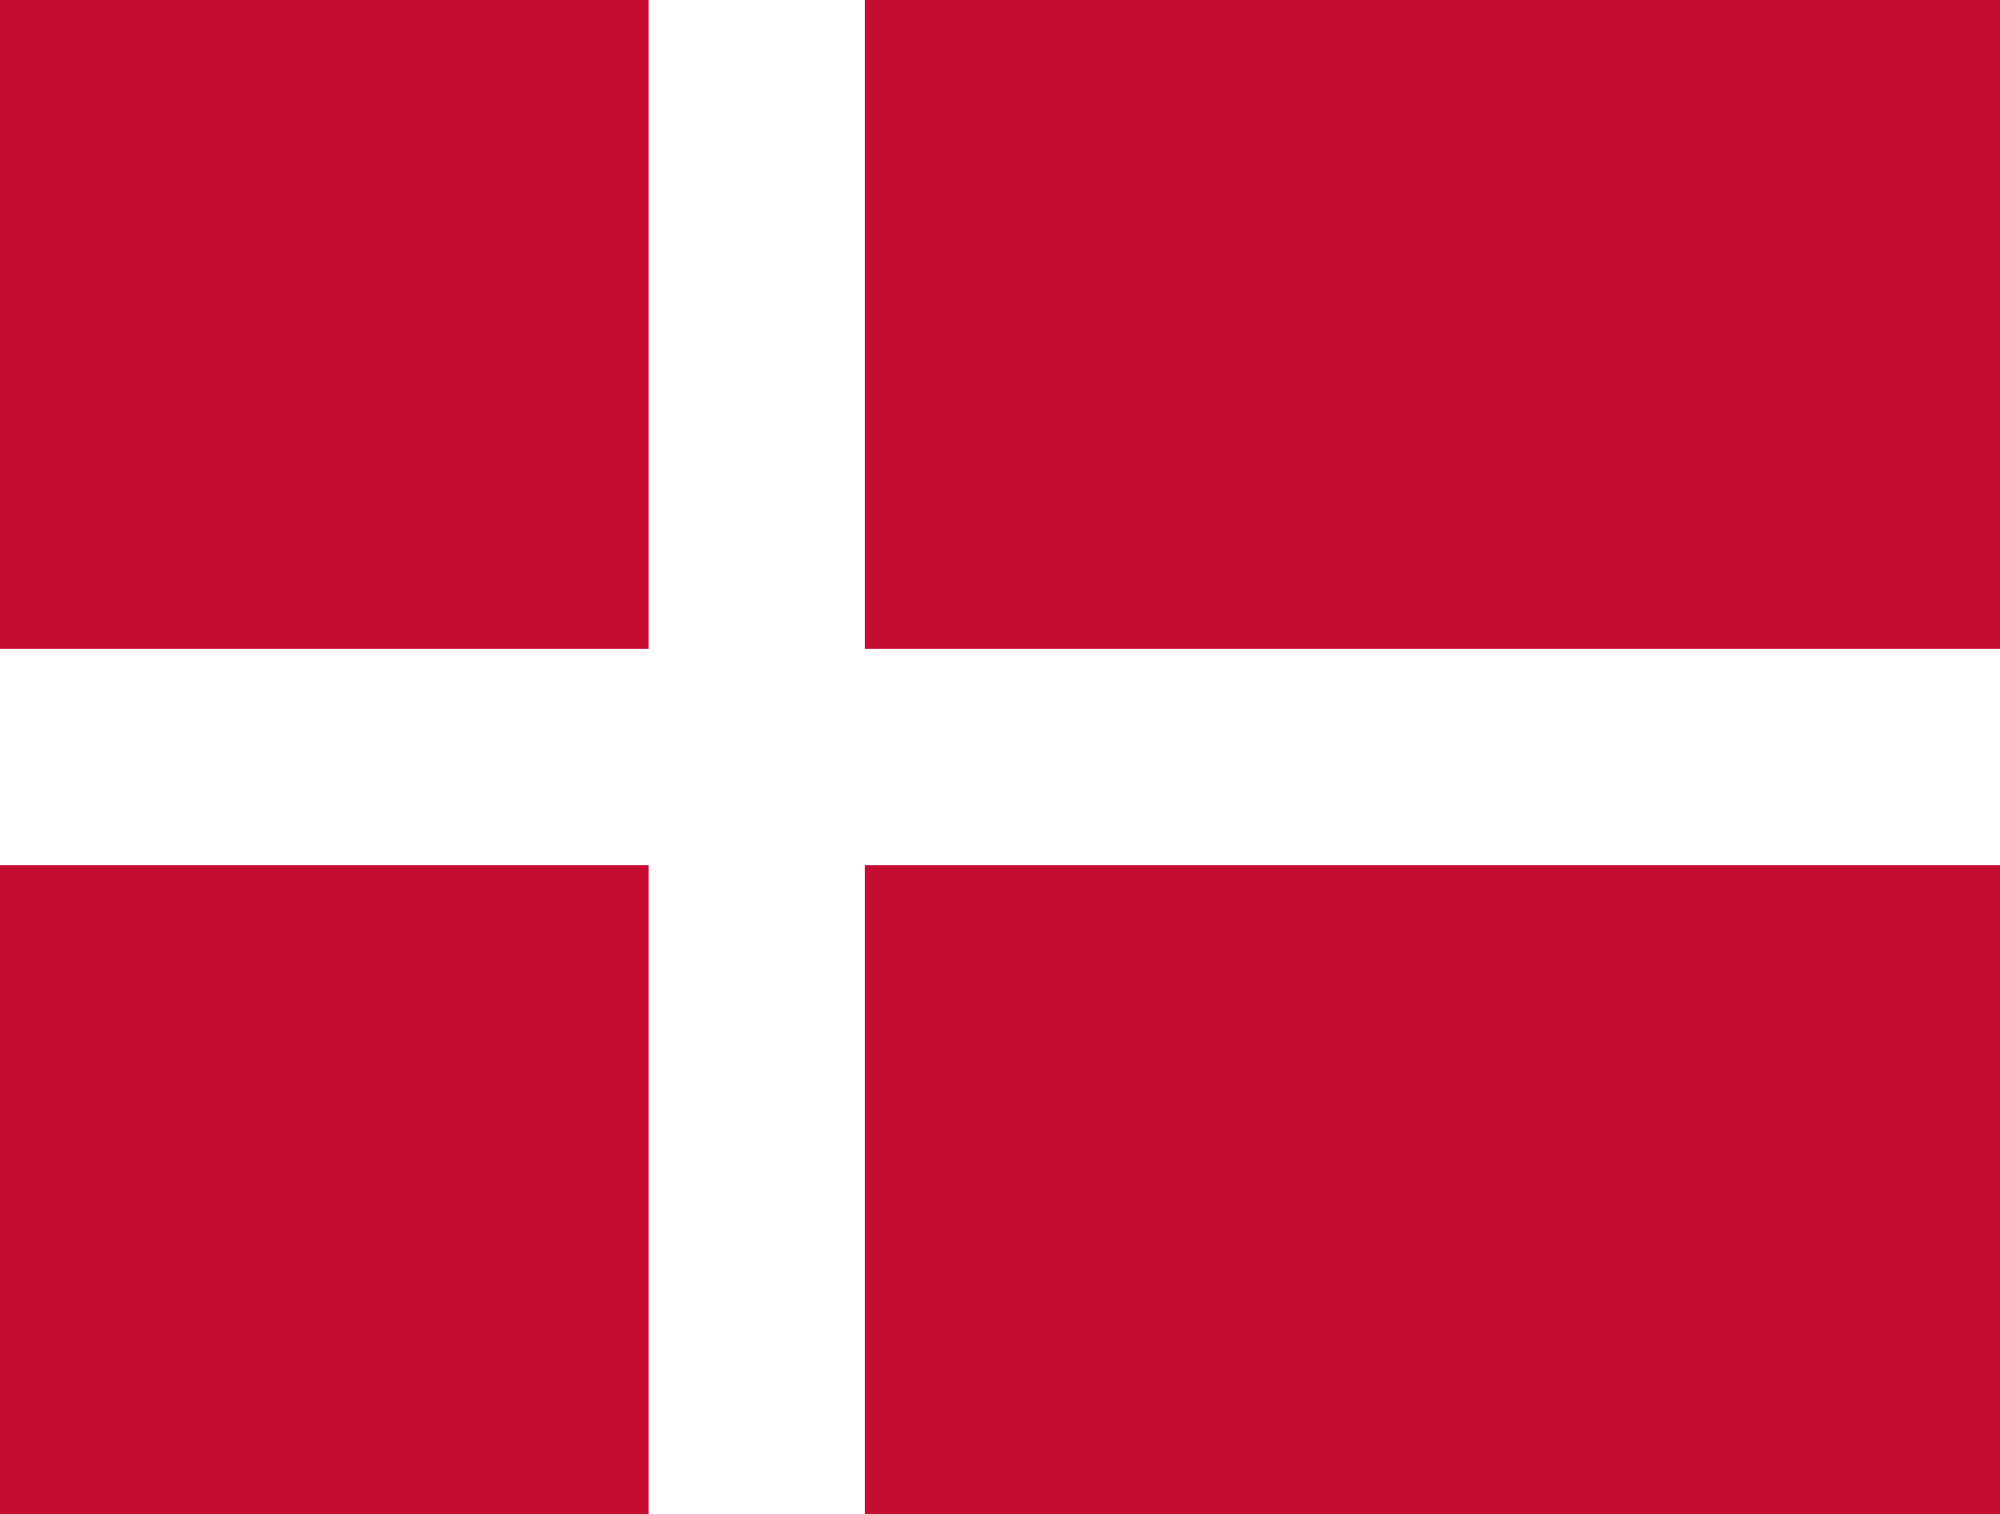 Flag Of Denmark Backgrounds, Compatible - PC, Mobile, Gadgets| 2000x1514 px